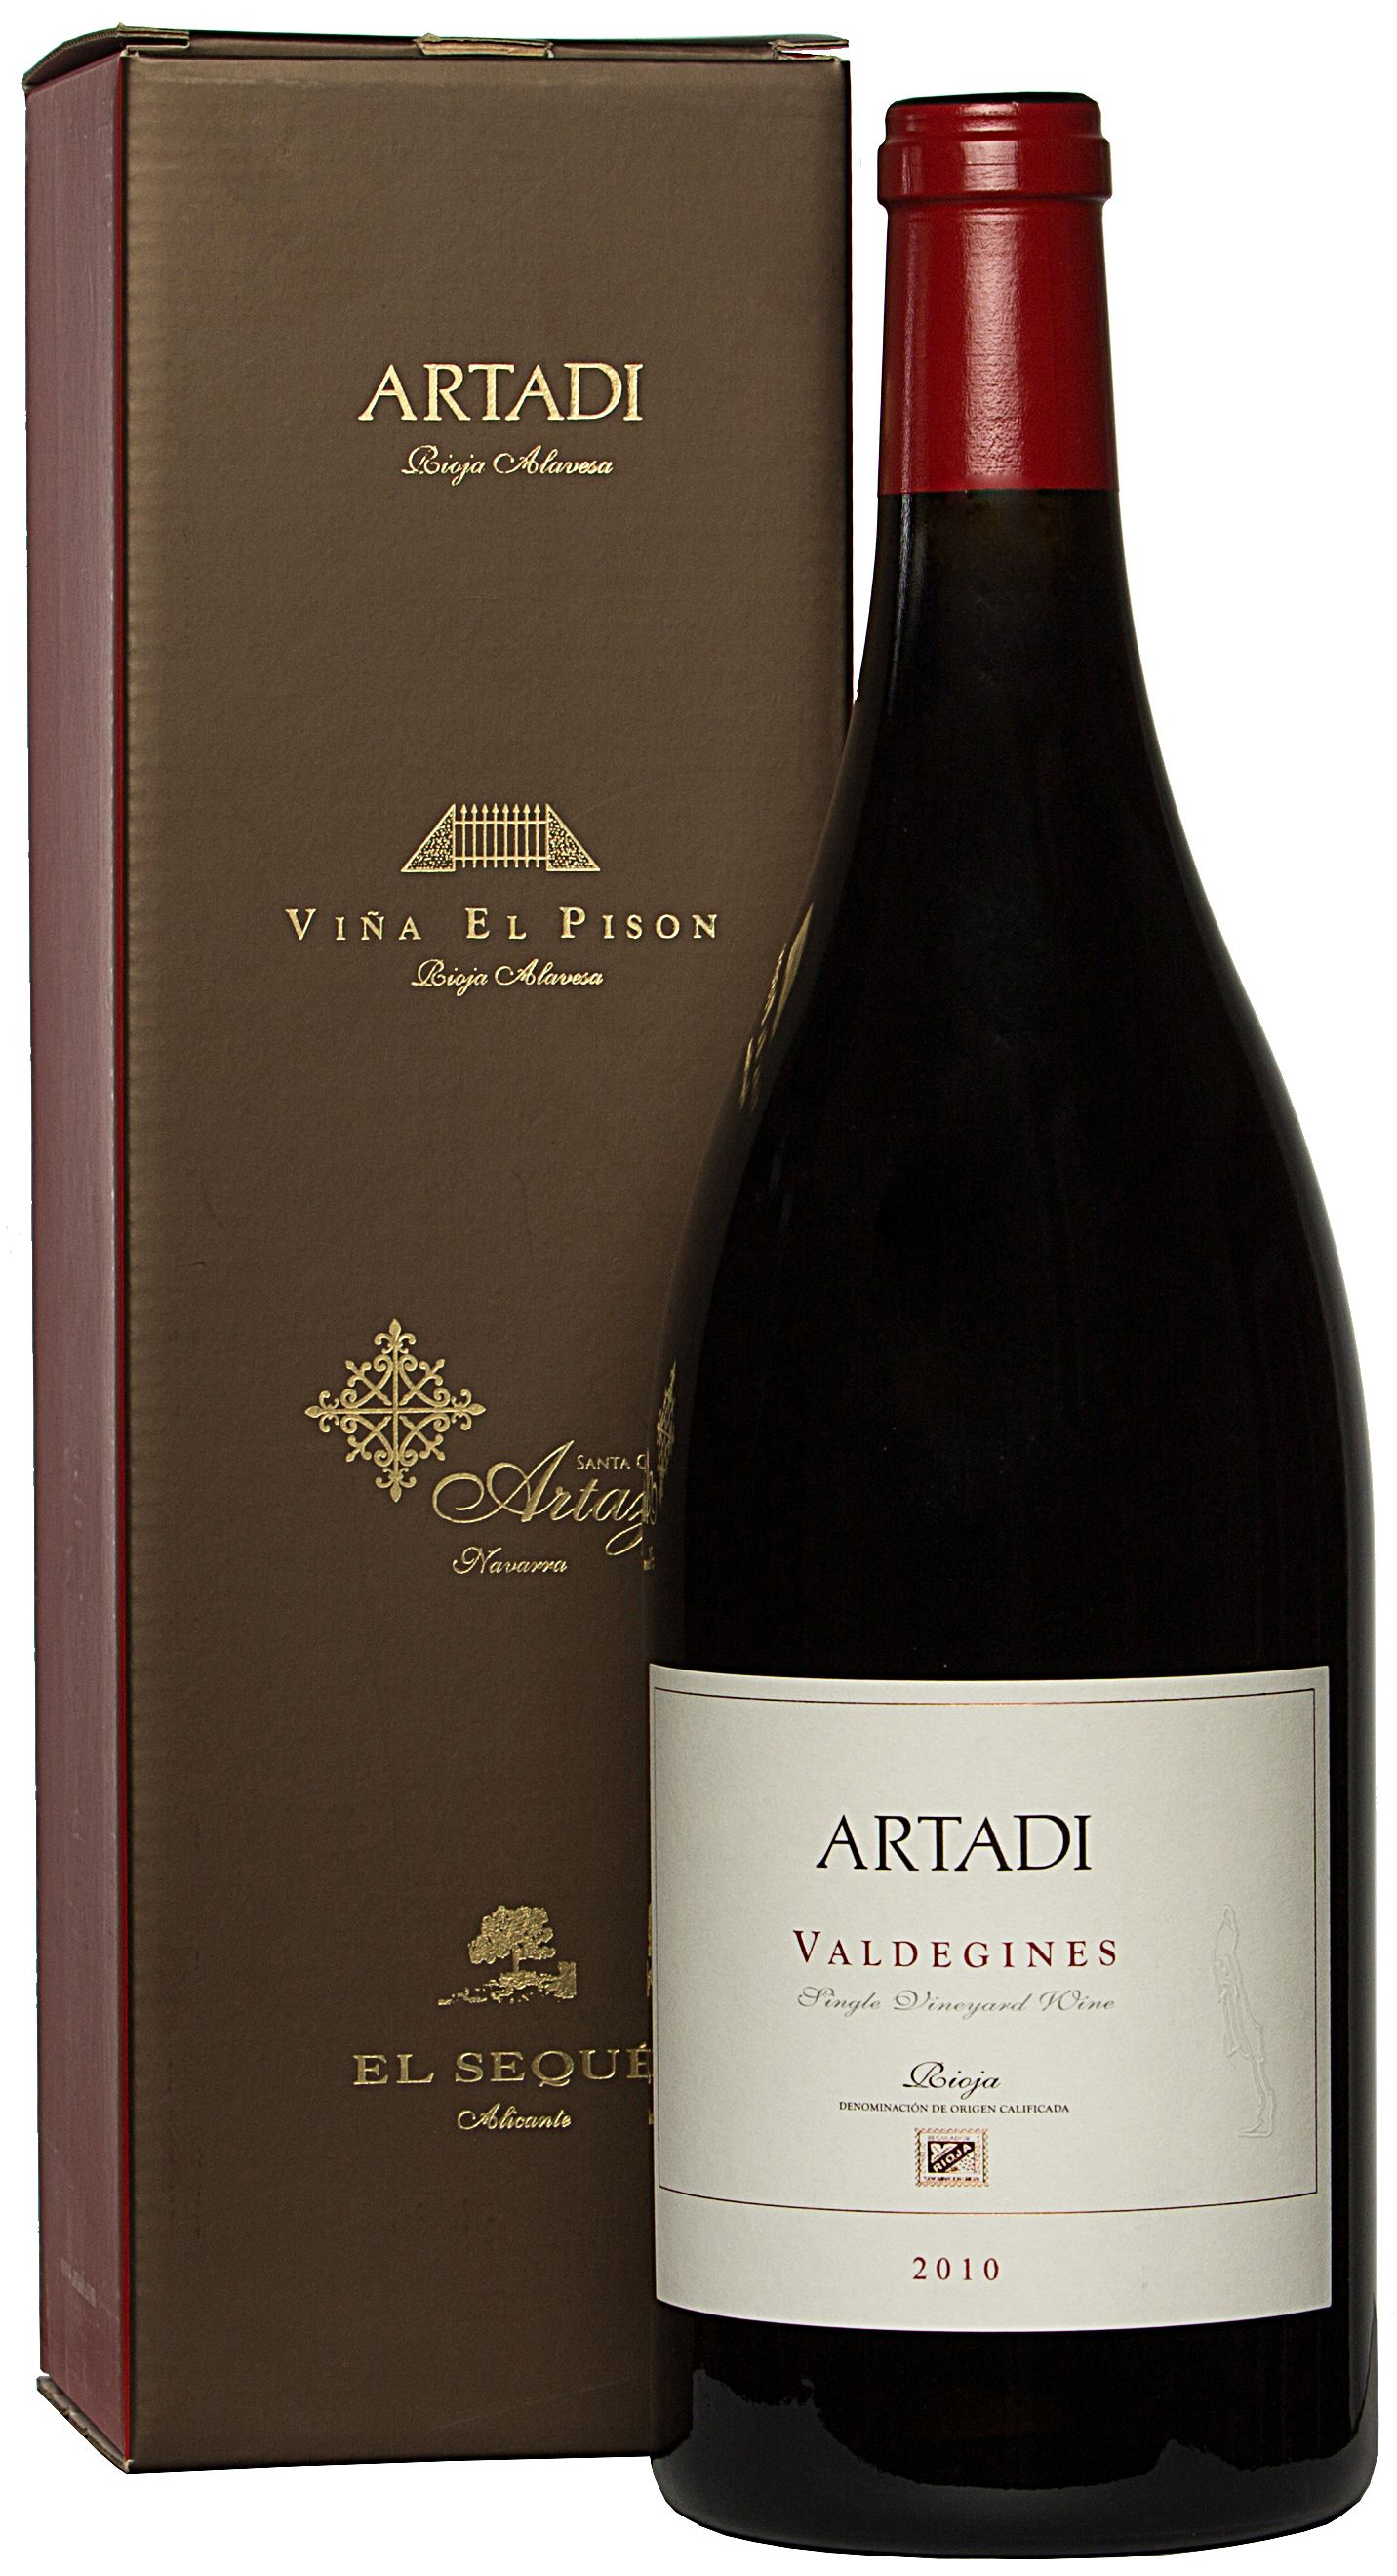 Artadi, Valdegines, 2010